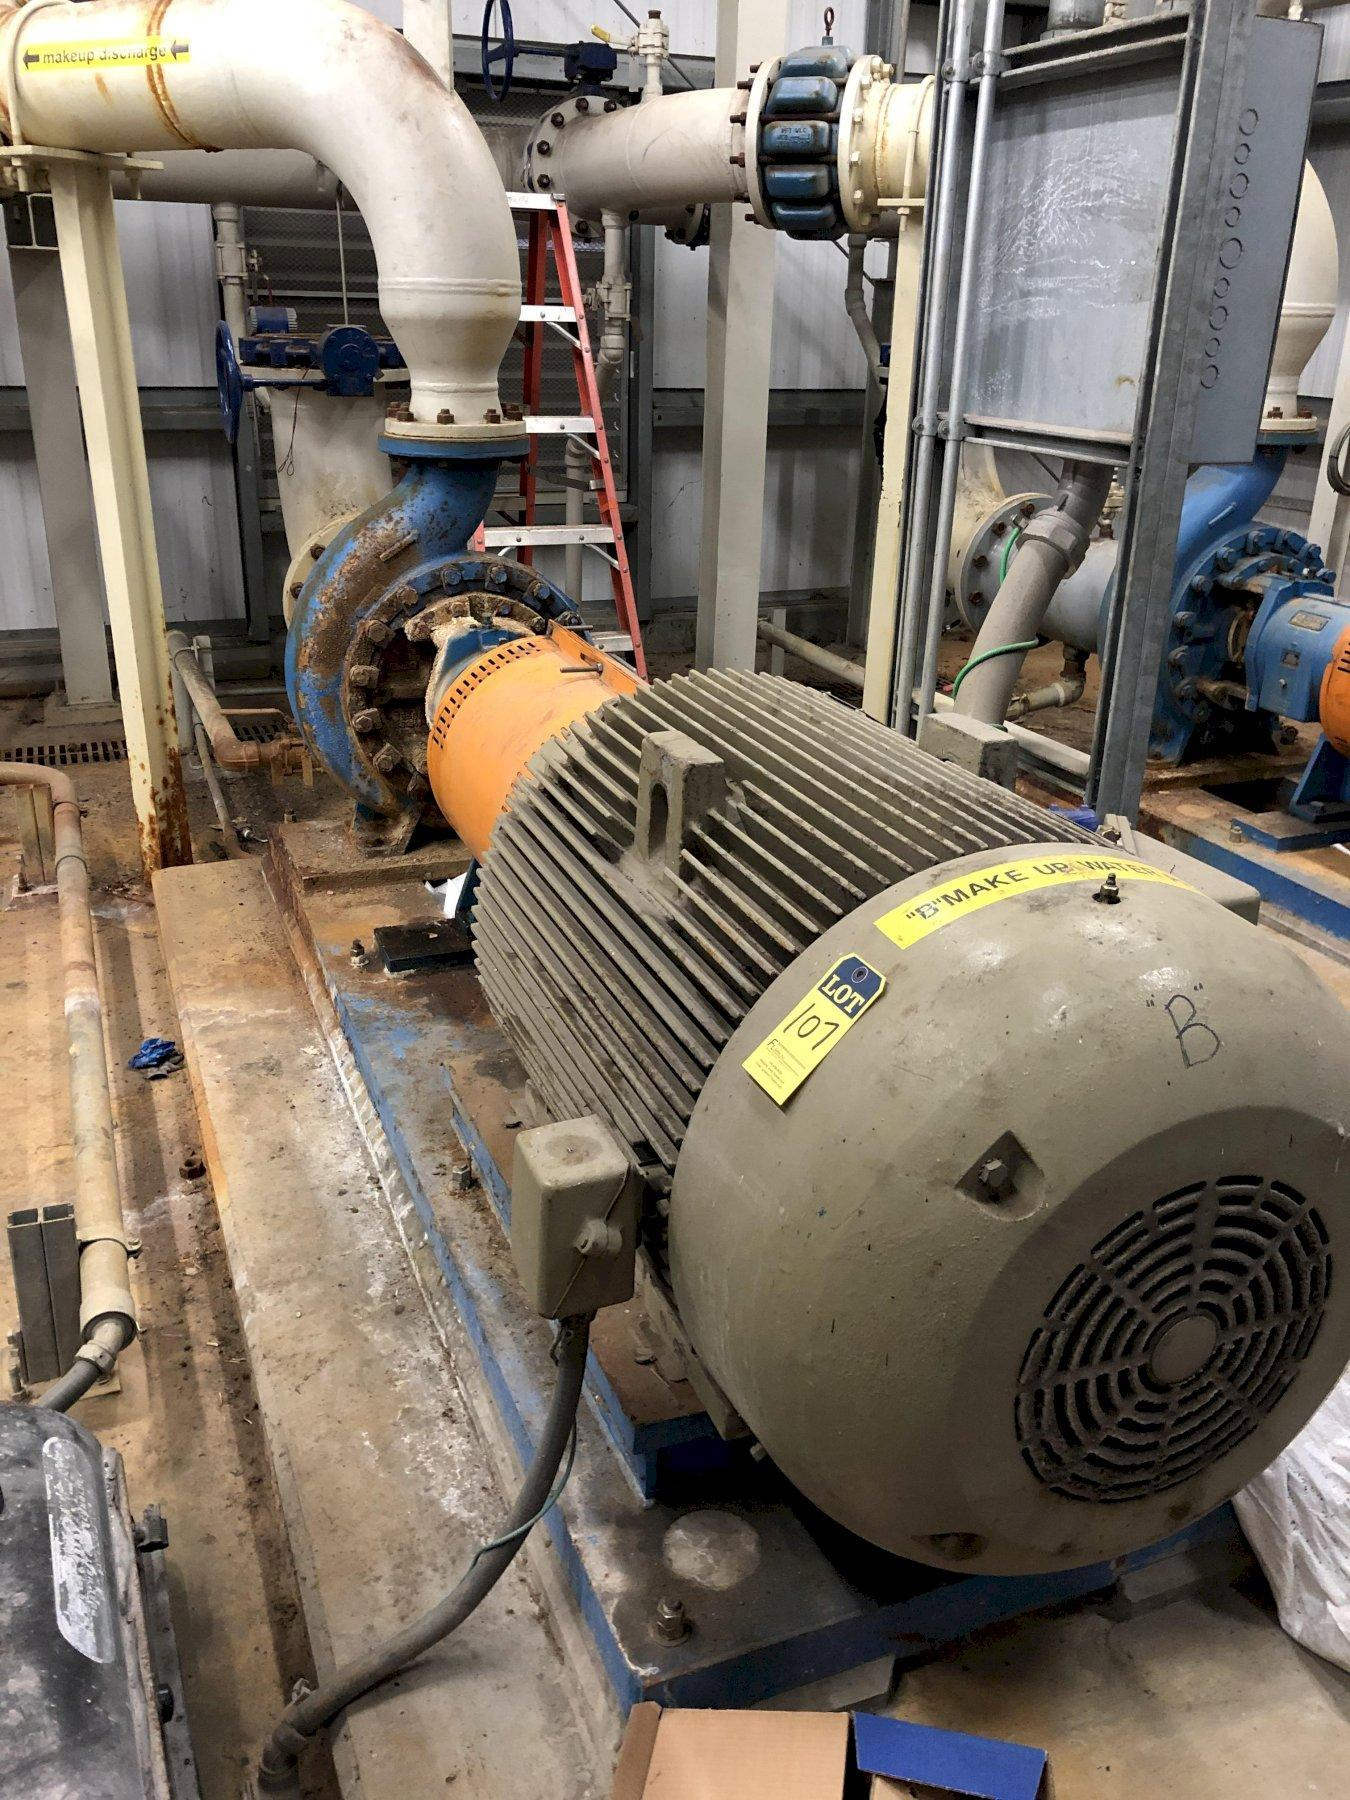 a makeup pump and 200hp motor with Goulds model 3180 pump size 6x10-16 s/n p259c942-2